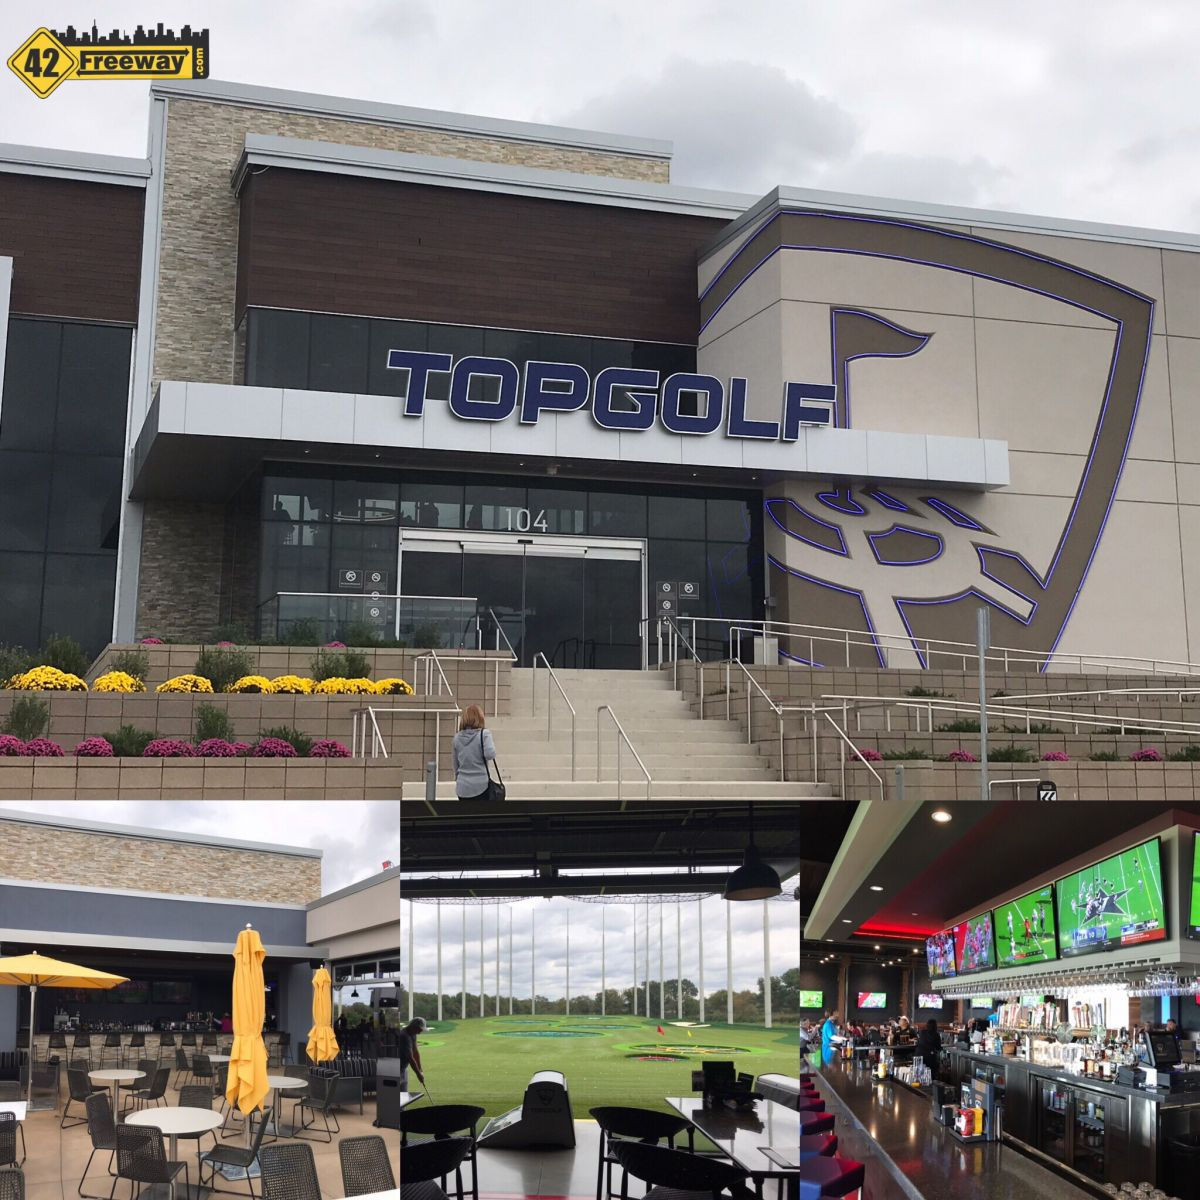 Top Golf Mt Laurel